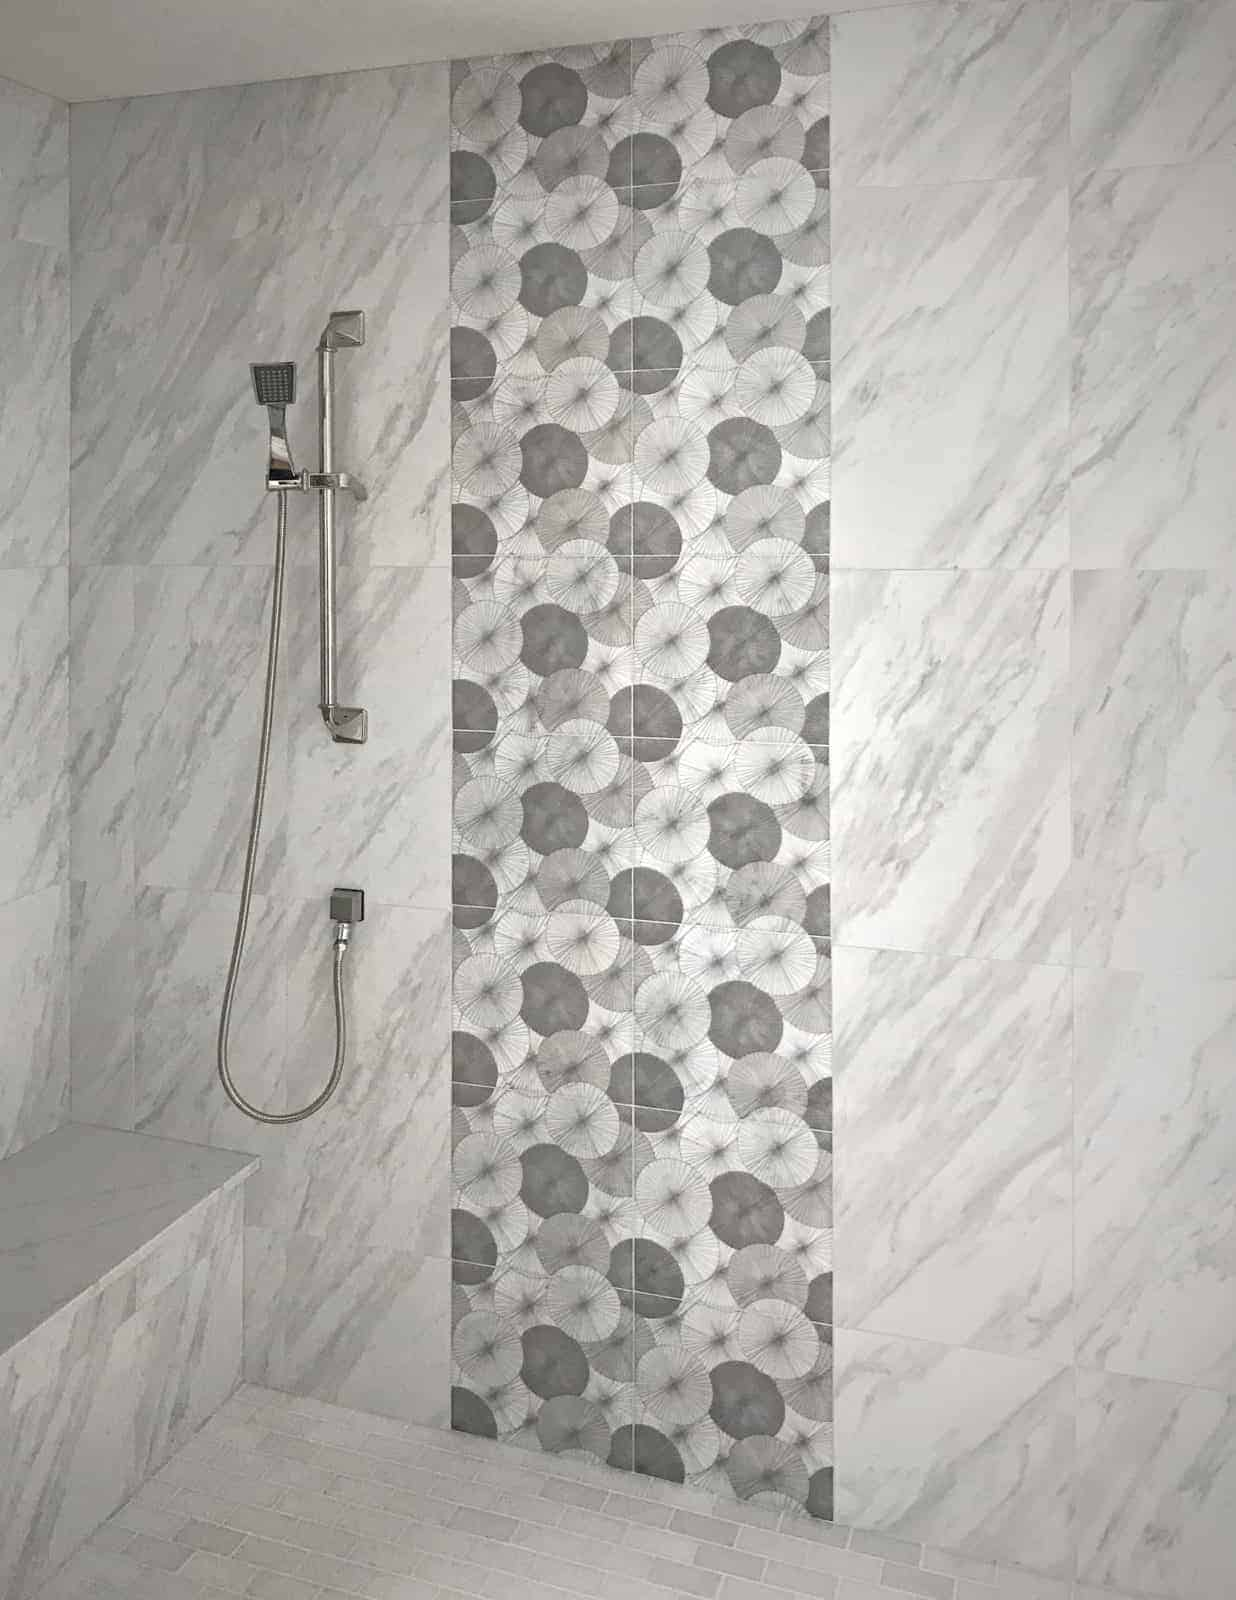 Parasol (greige) on 12x12 Carrara from Artisan Stone Tile